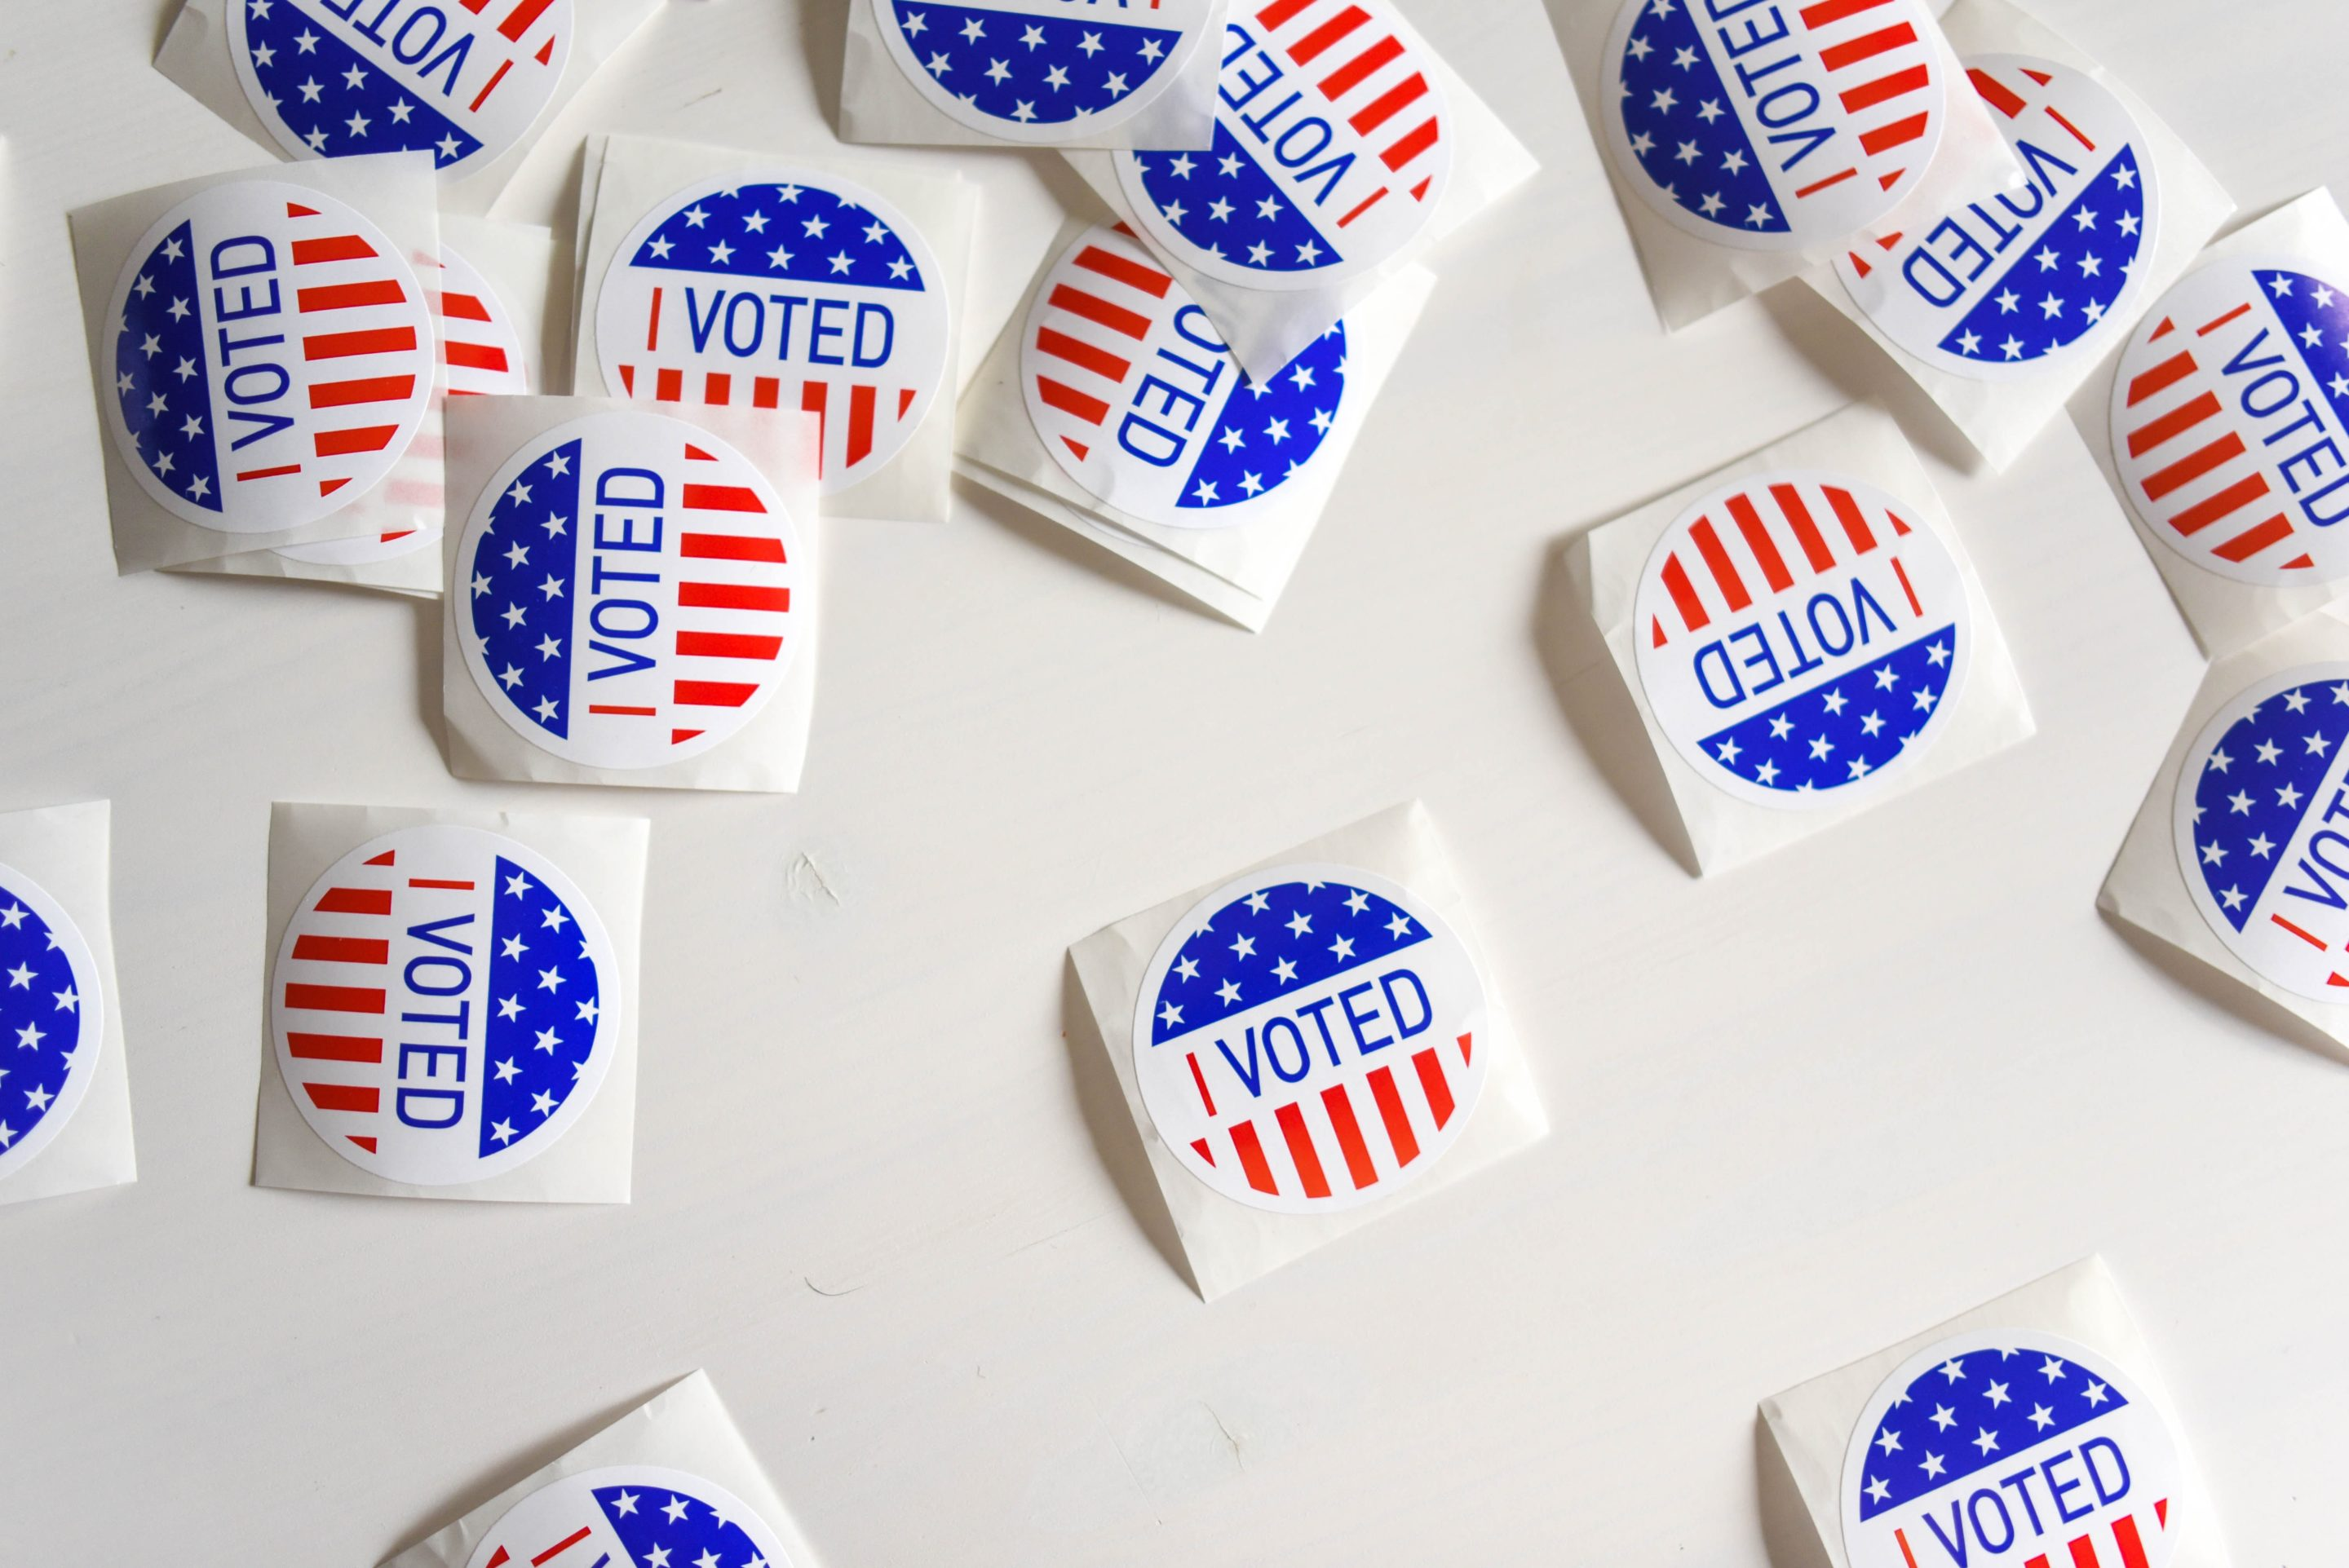 """I Voted"" stickers scattered on a white table."